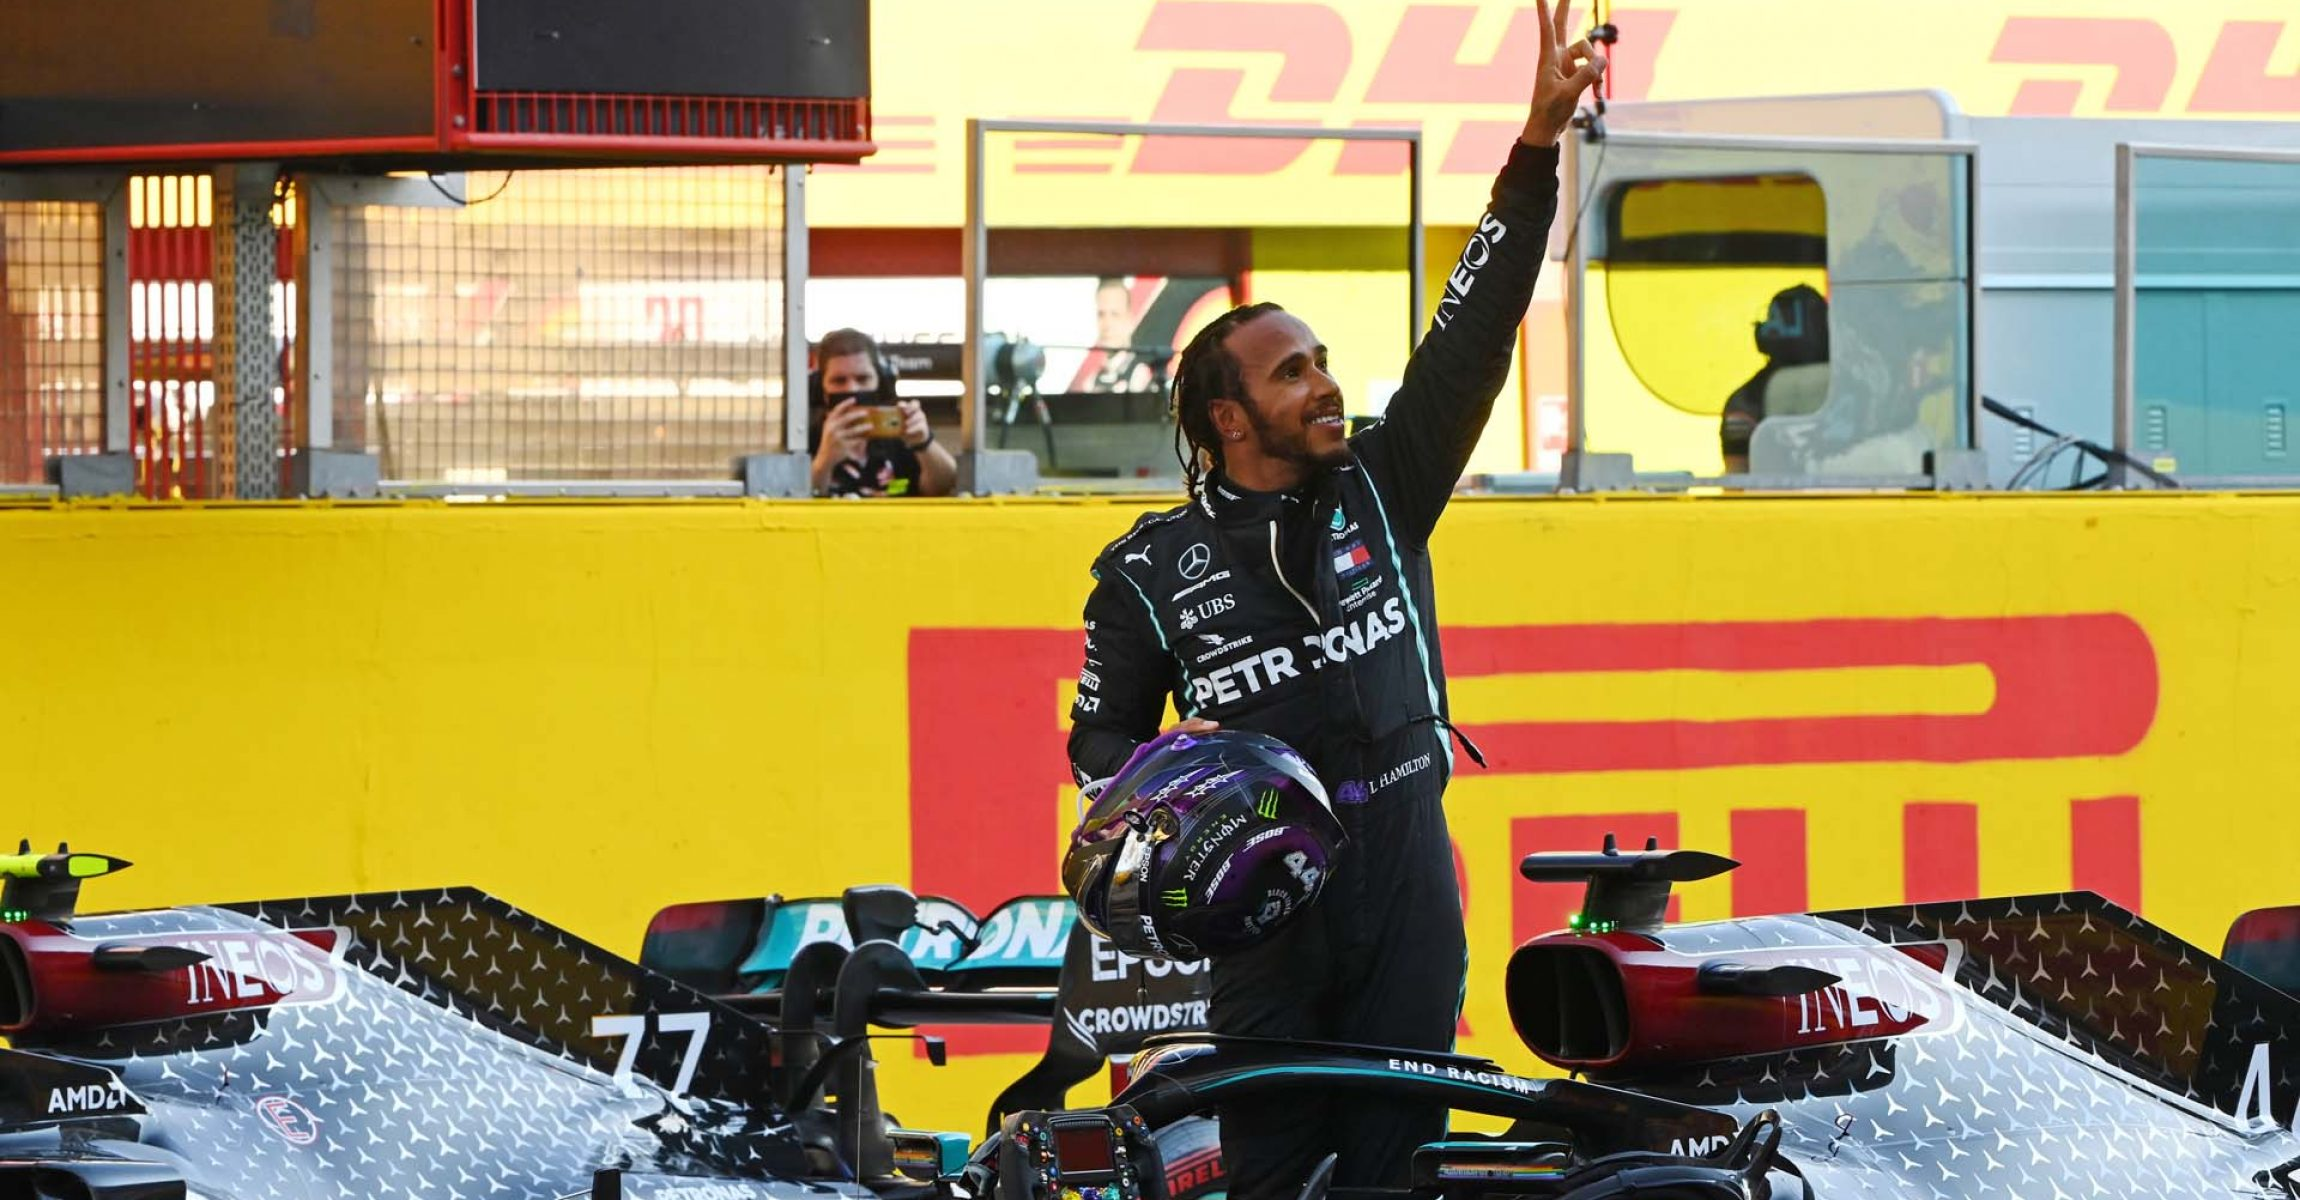 2020 Tuscan Grand Prix, Sunday - LAT Images Lewis Hamilton Mercedes